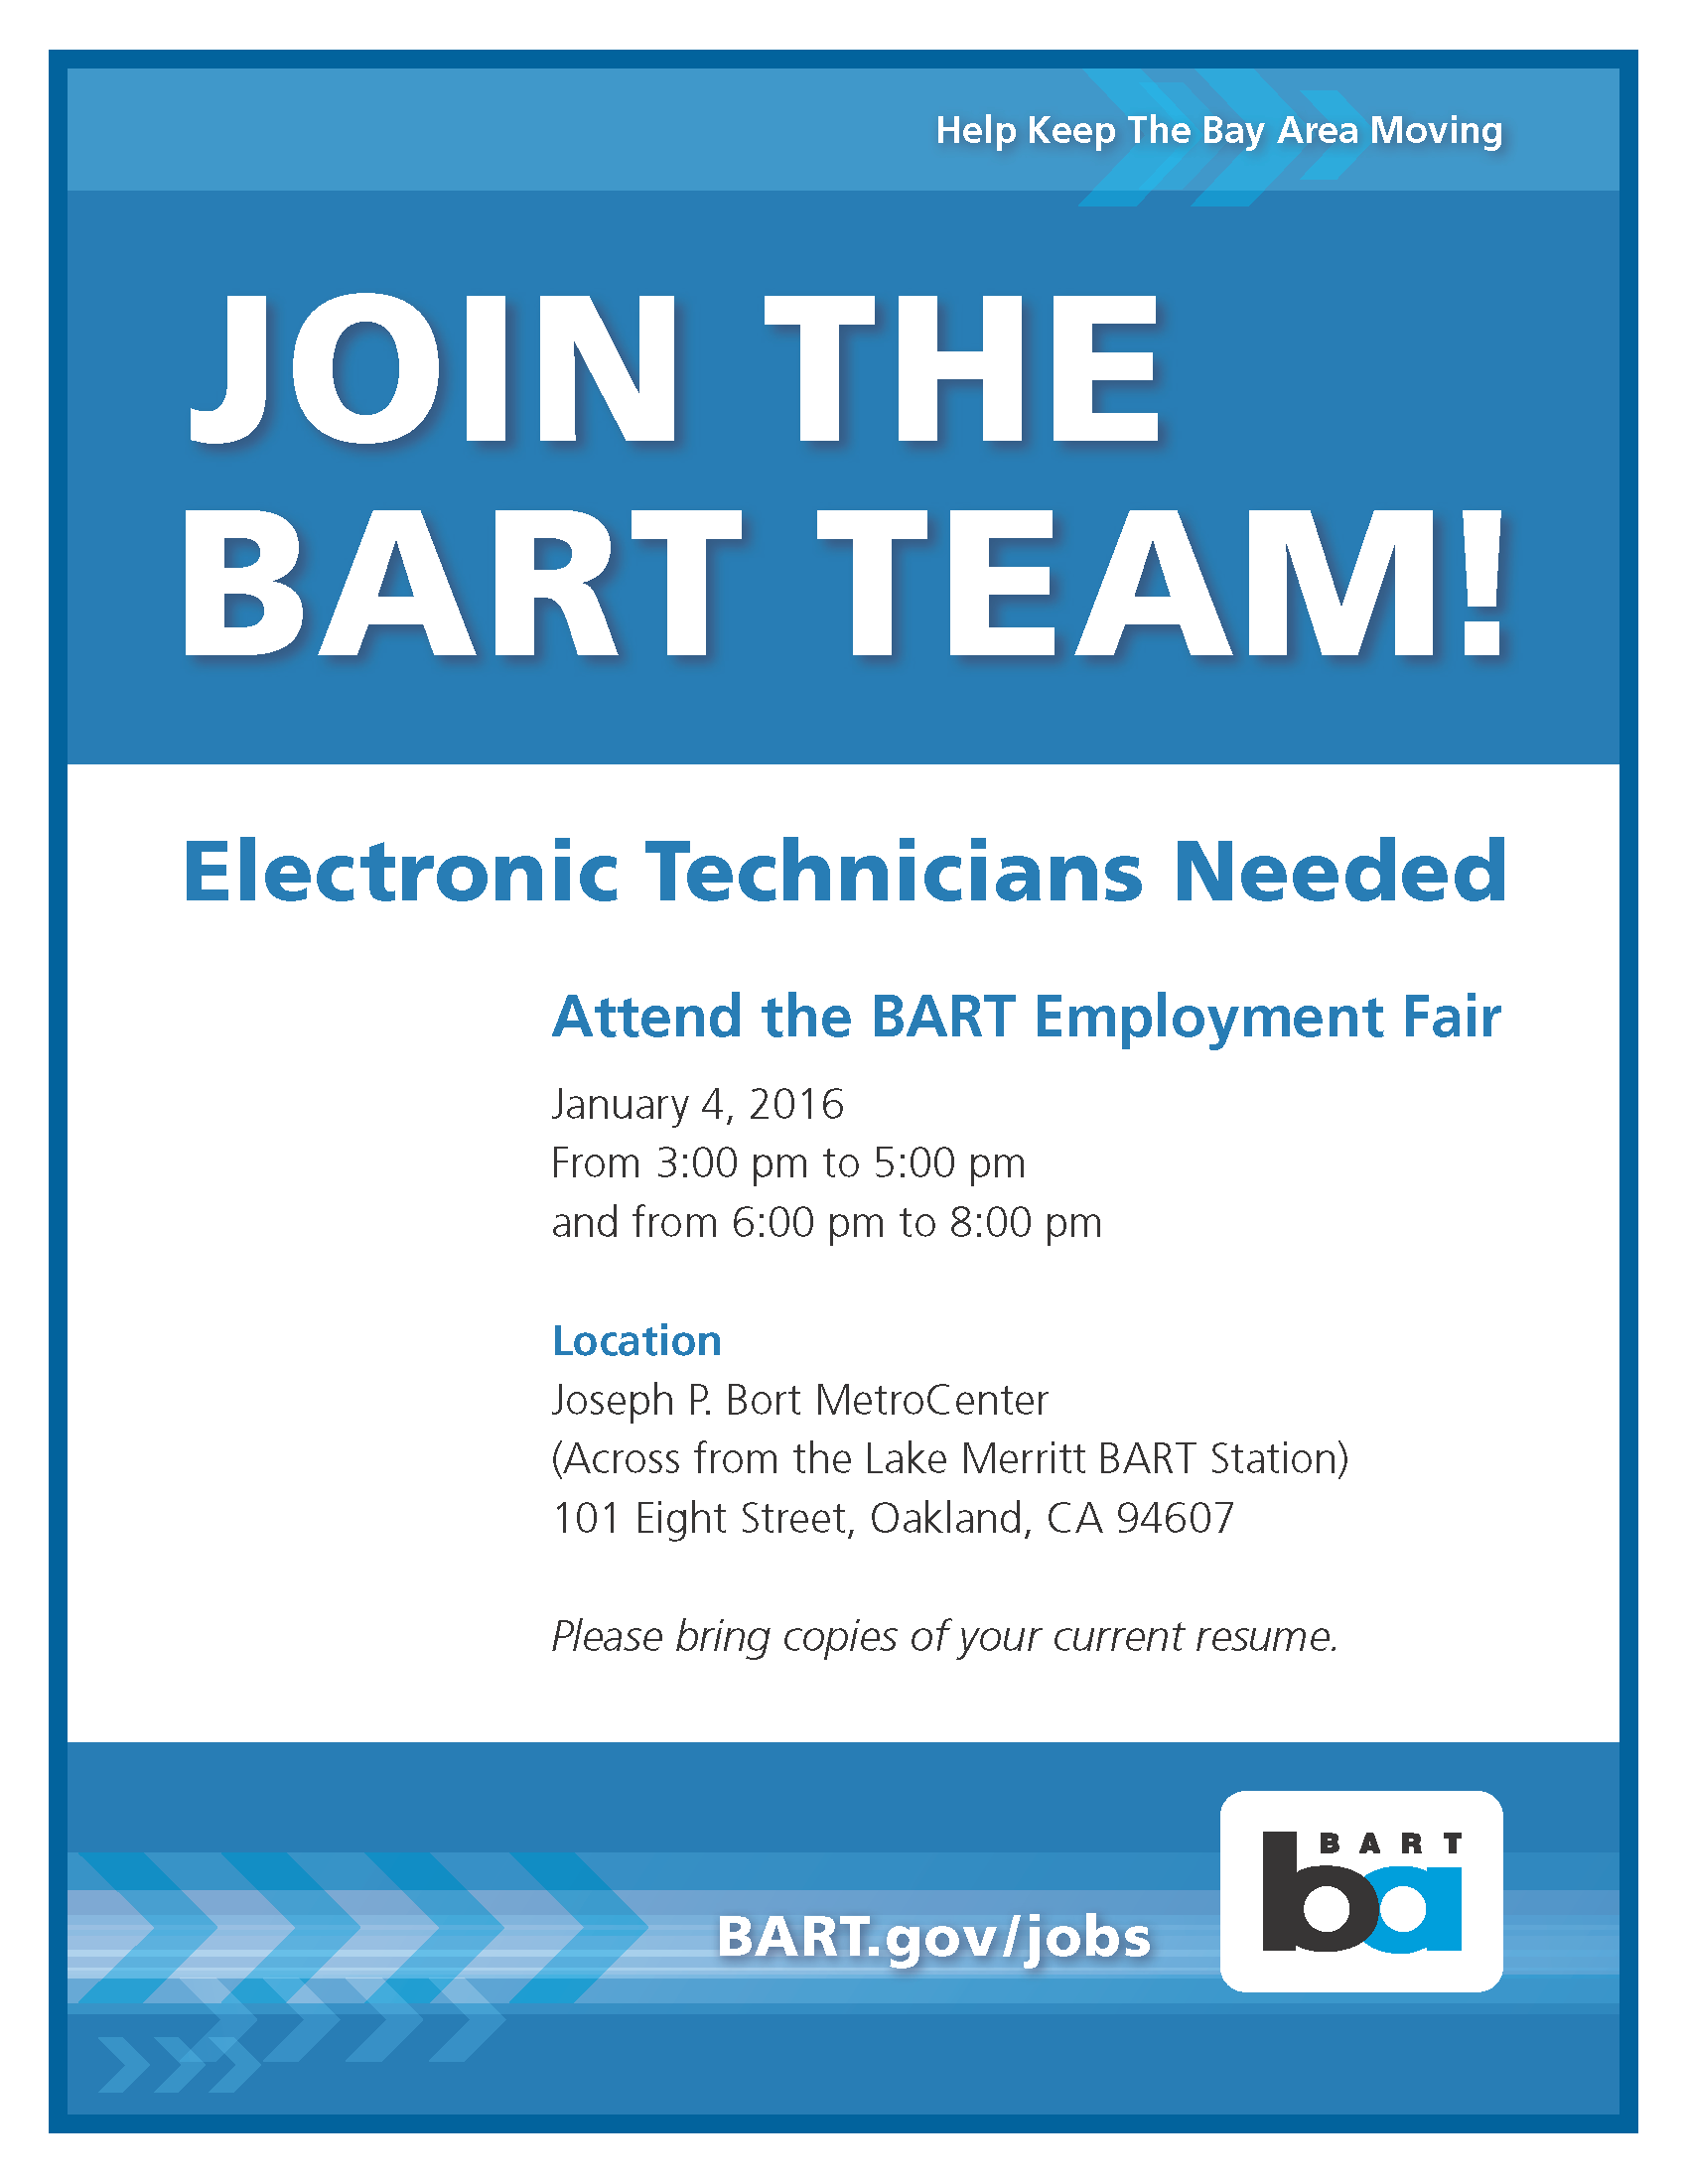 bart hosts job fair to recruit electronic technicians